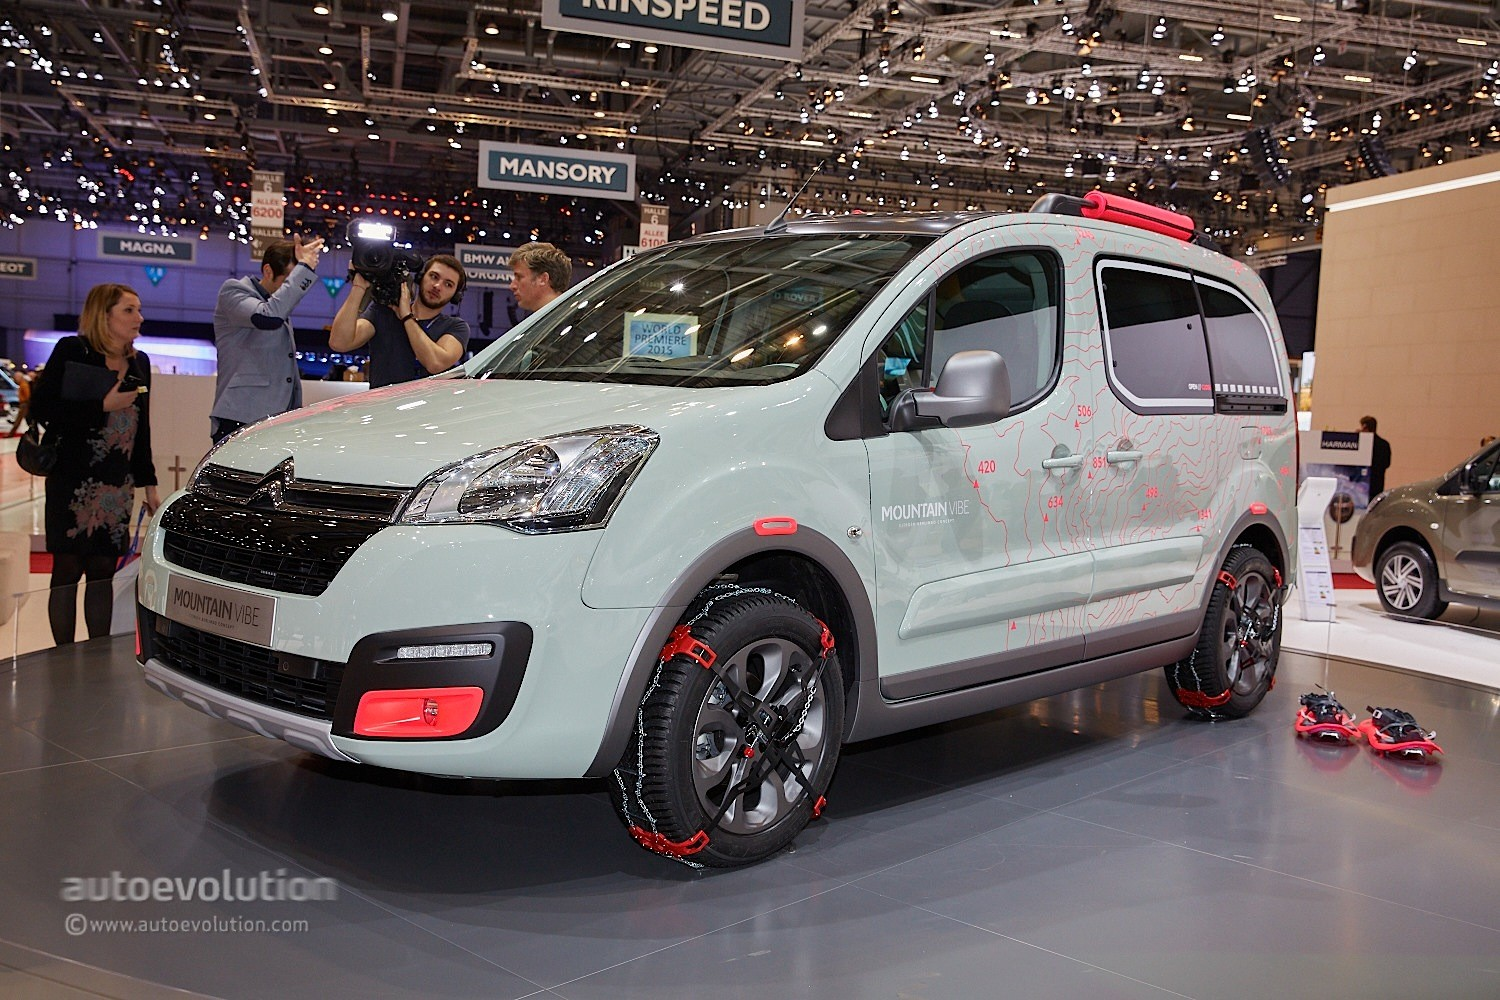 Citroen Previews 2016 Berlingo With Mountain Vibe Concept